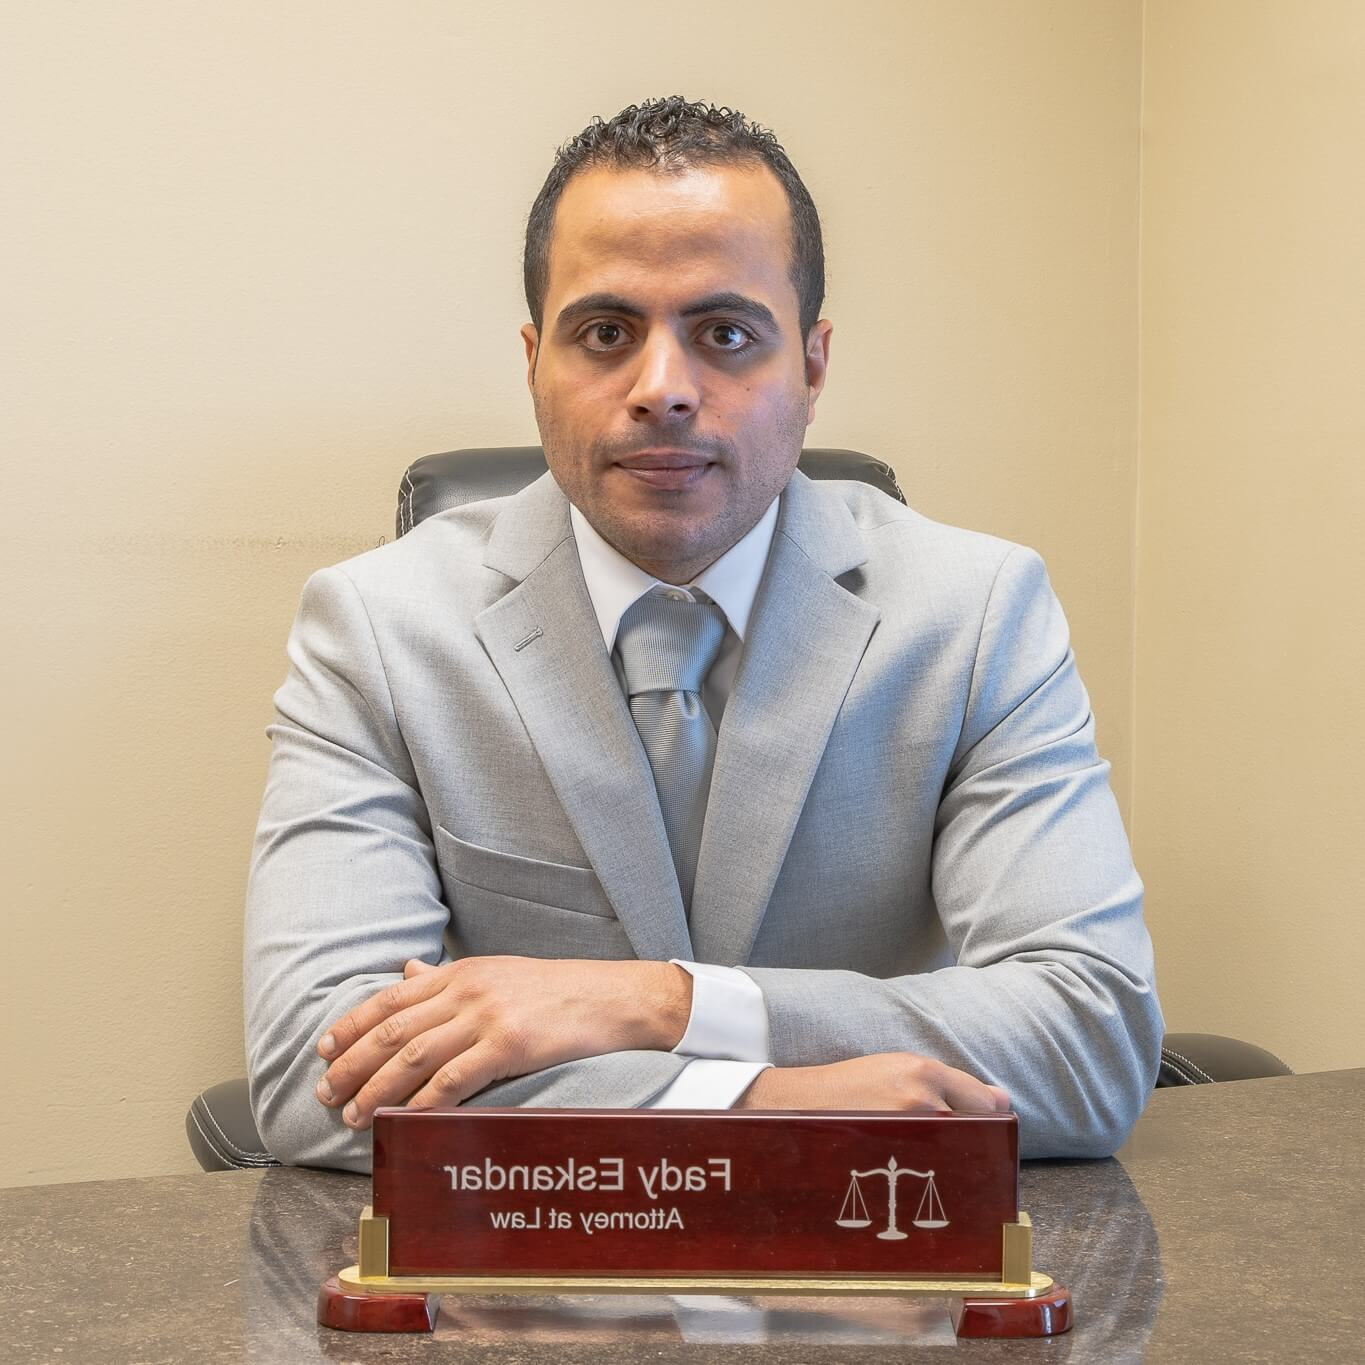 Fady Eskandar, Arabic speaking Immigration lawyer in USA